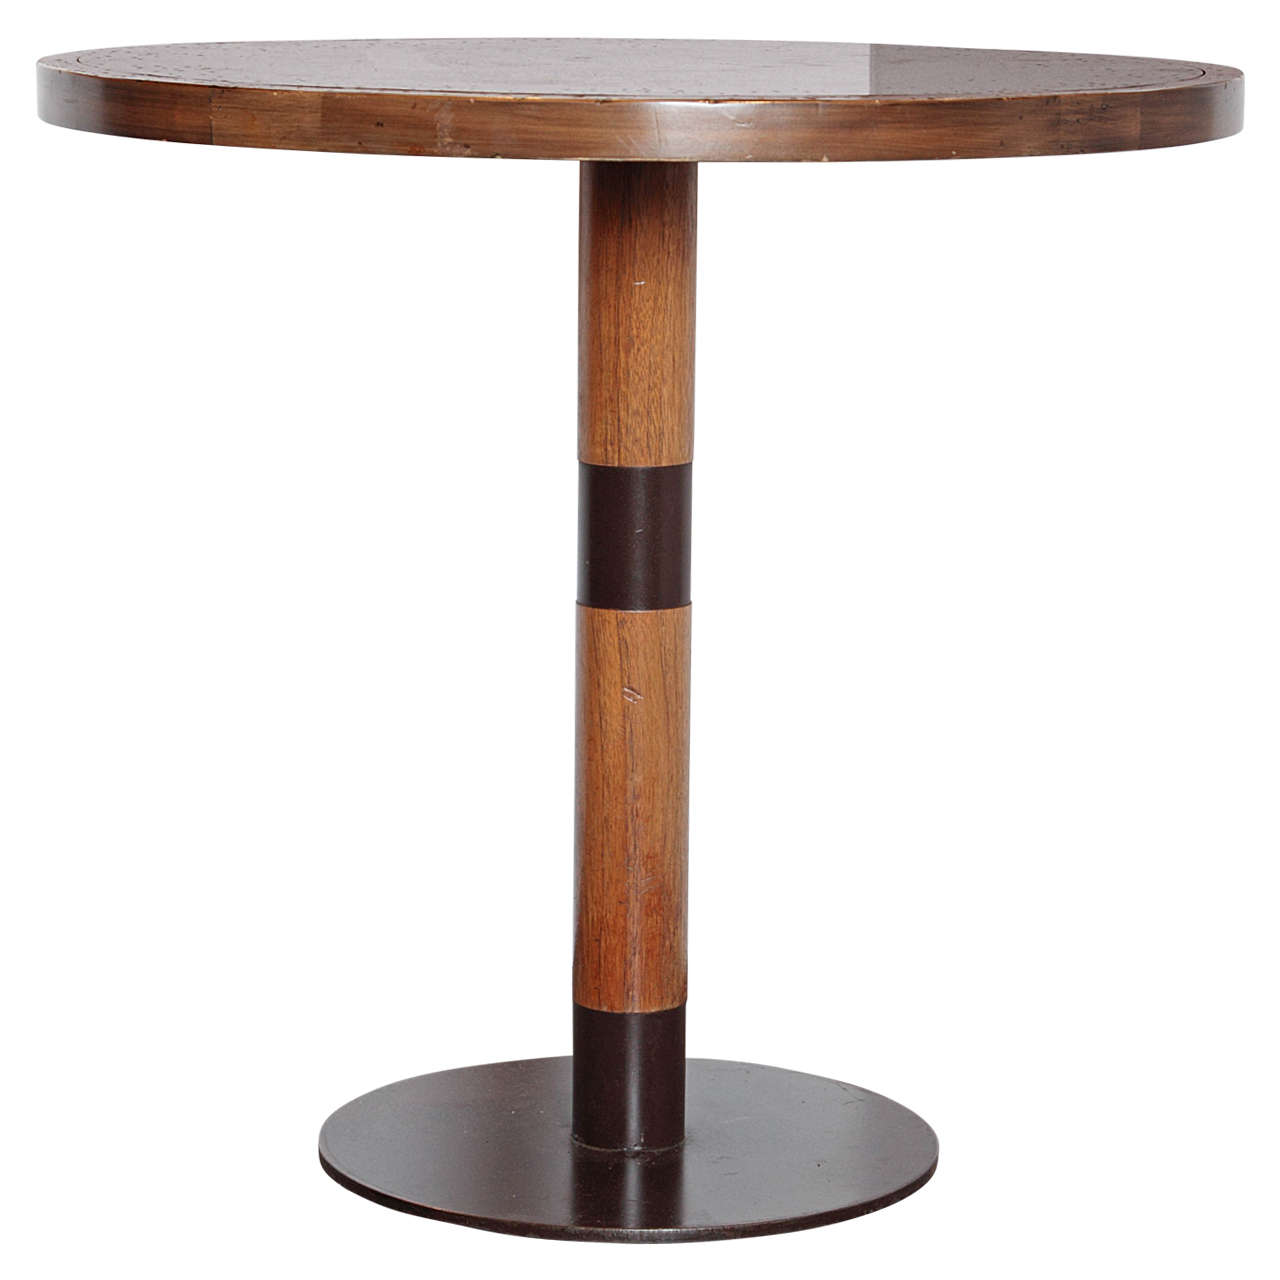 Petrified wood side table - Vintage Spanish Wood And Iron With Zinc Top Bistro Tables